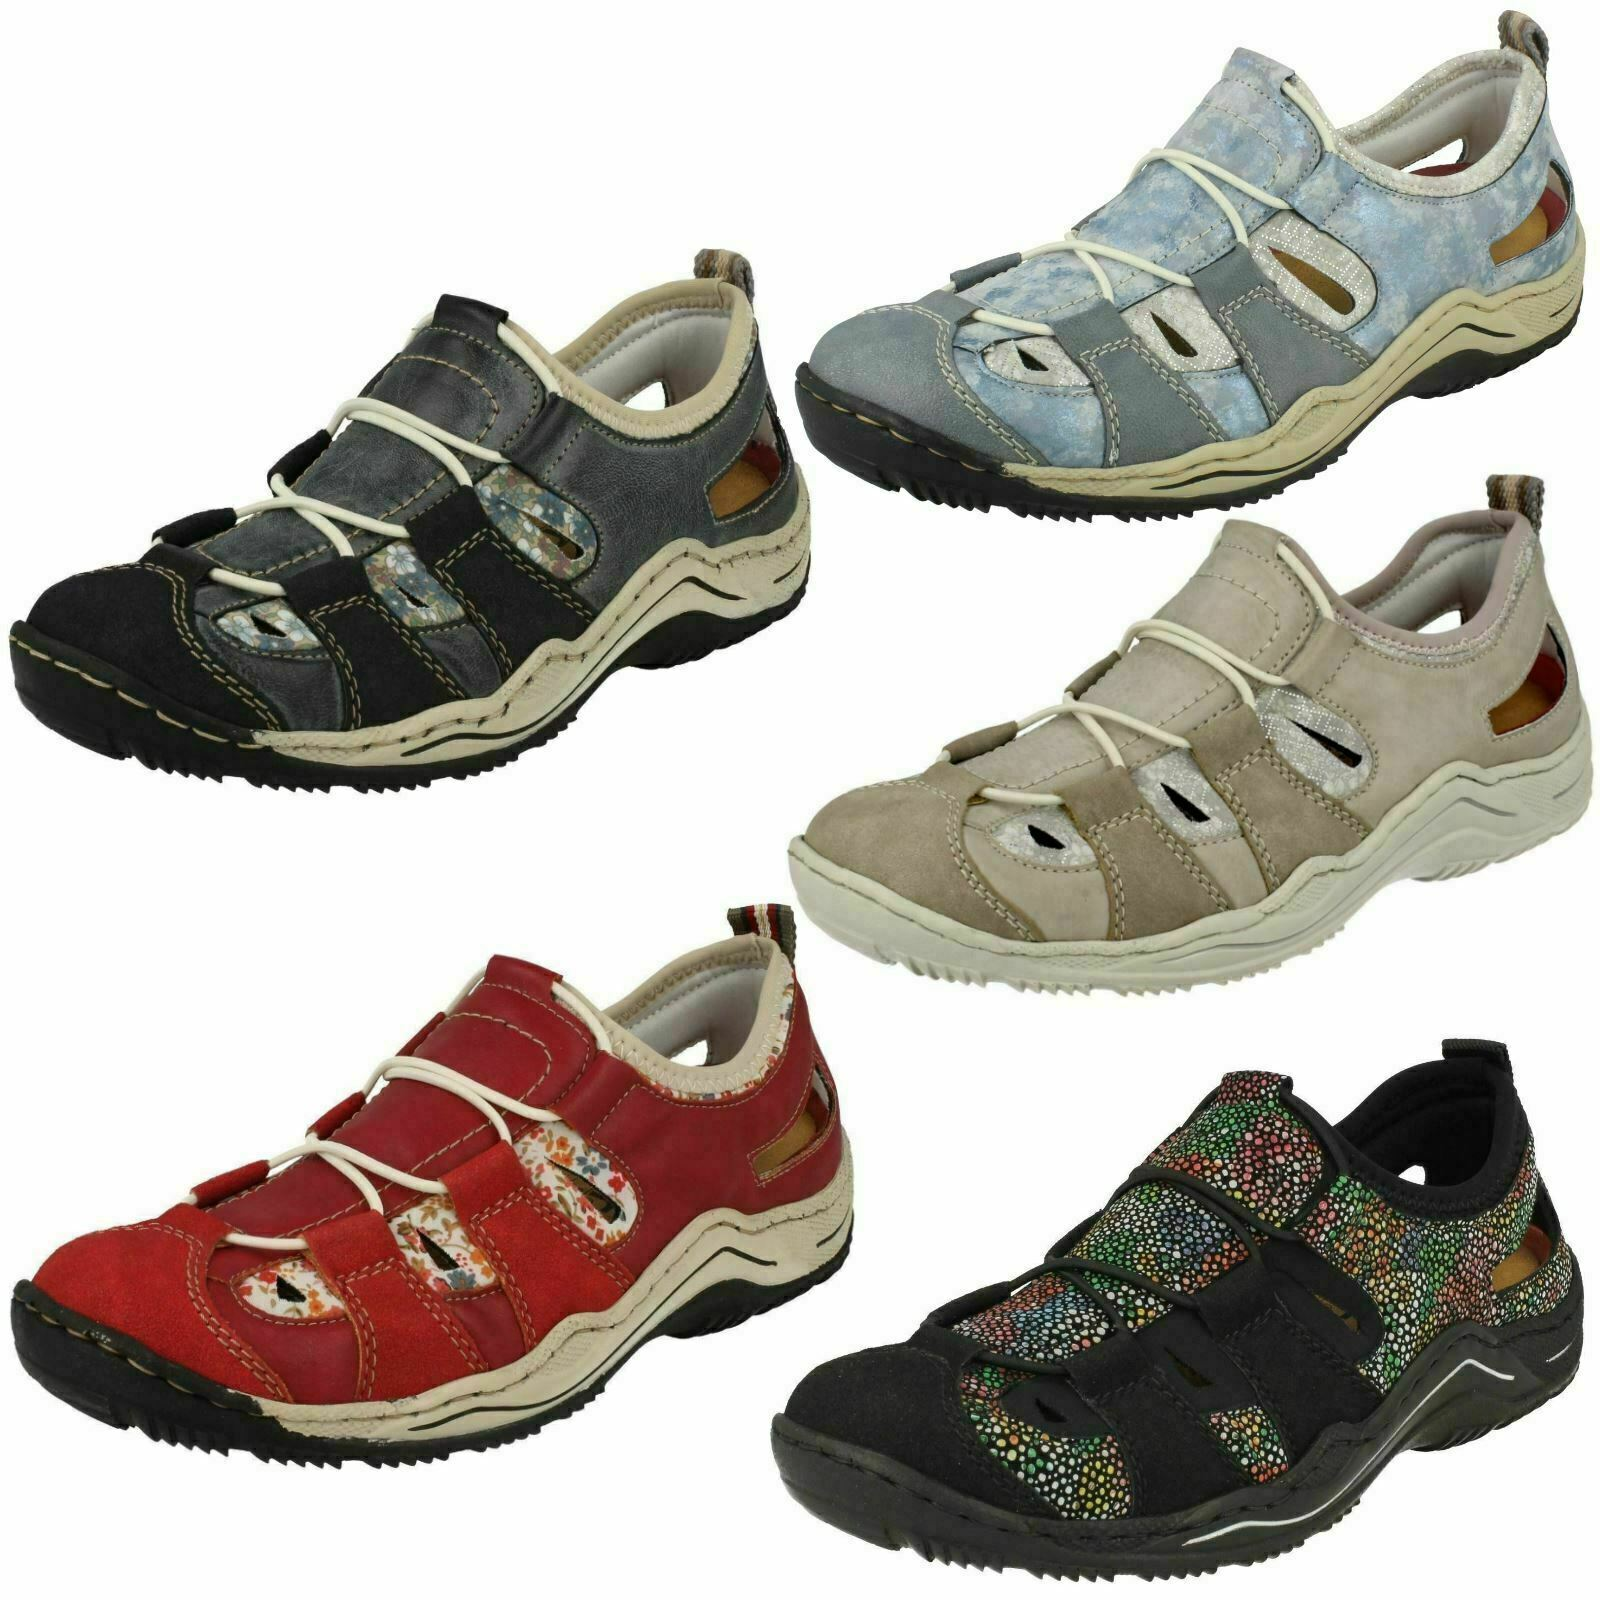 L0561 LADIES RIEKER SPORTS SLIP ON CASUAL ELASTICATED FLAT TRAINERS SHOES SIZE